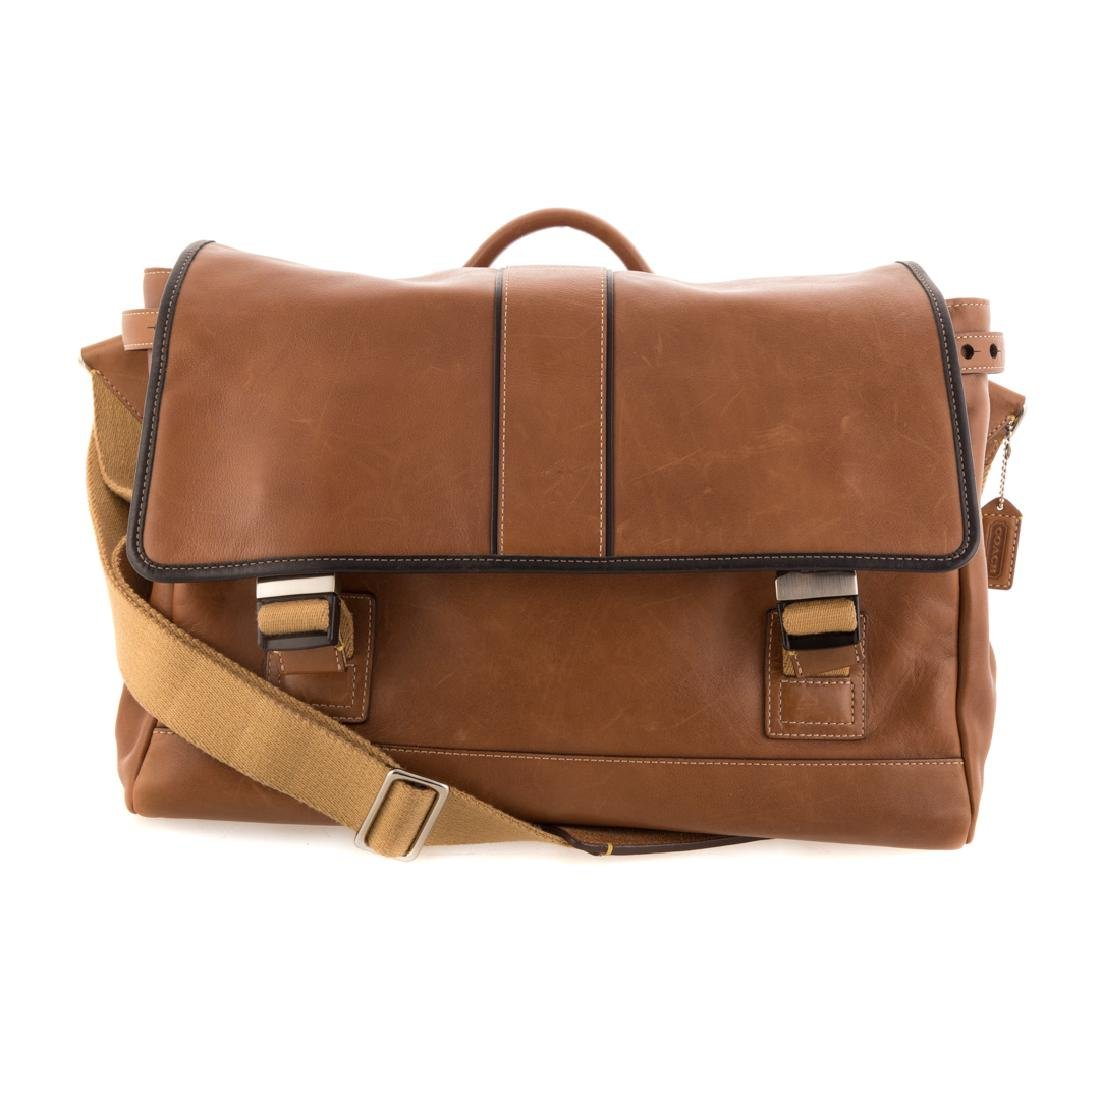 A Gent's Coach Leather Messenger Tote